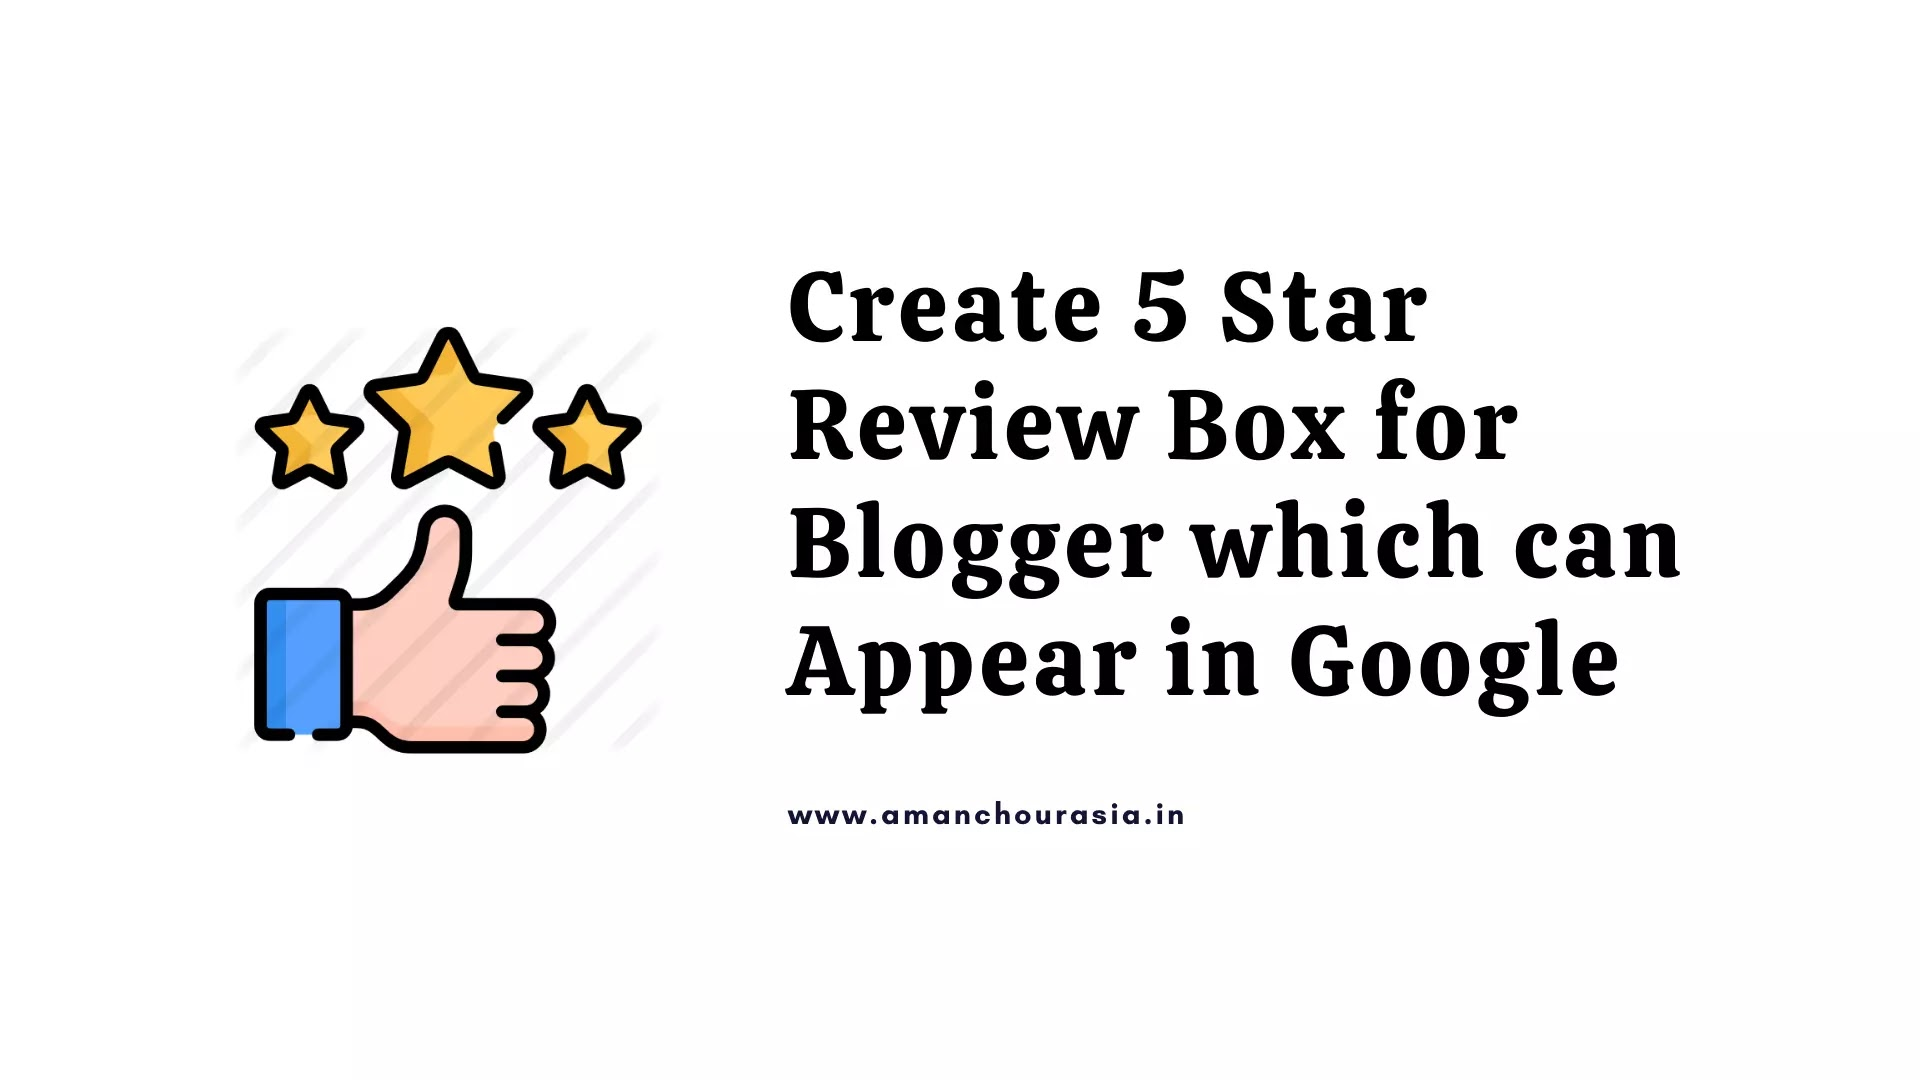 Create 5 Star Review Box for Blogger which can Appear in Google